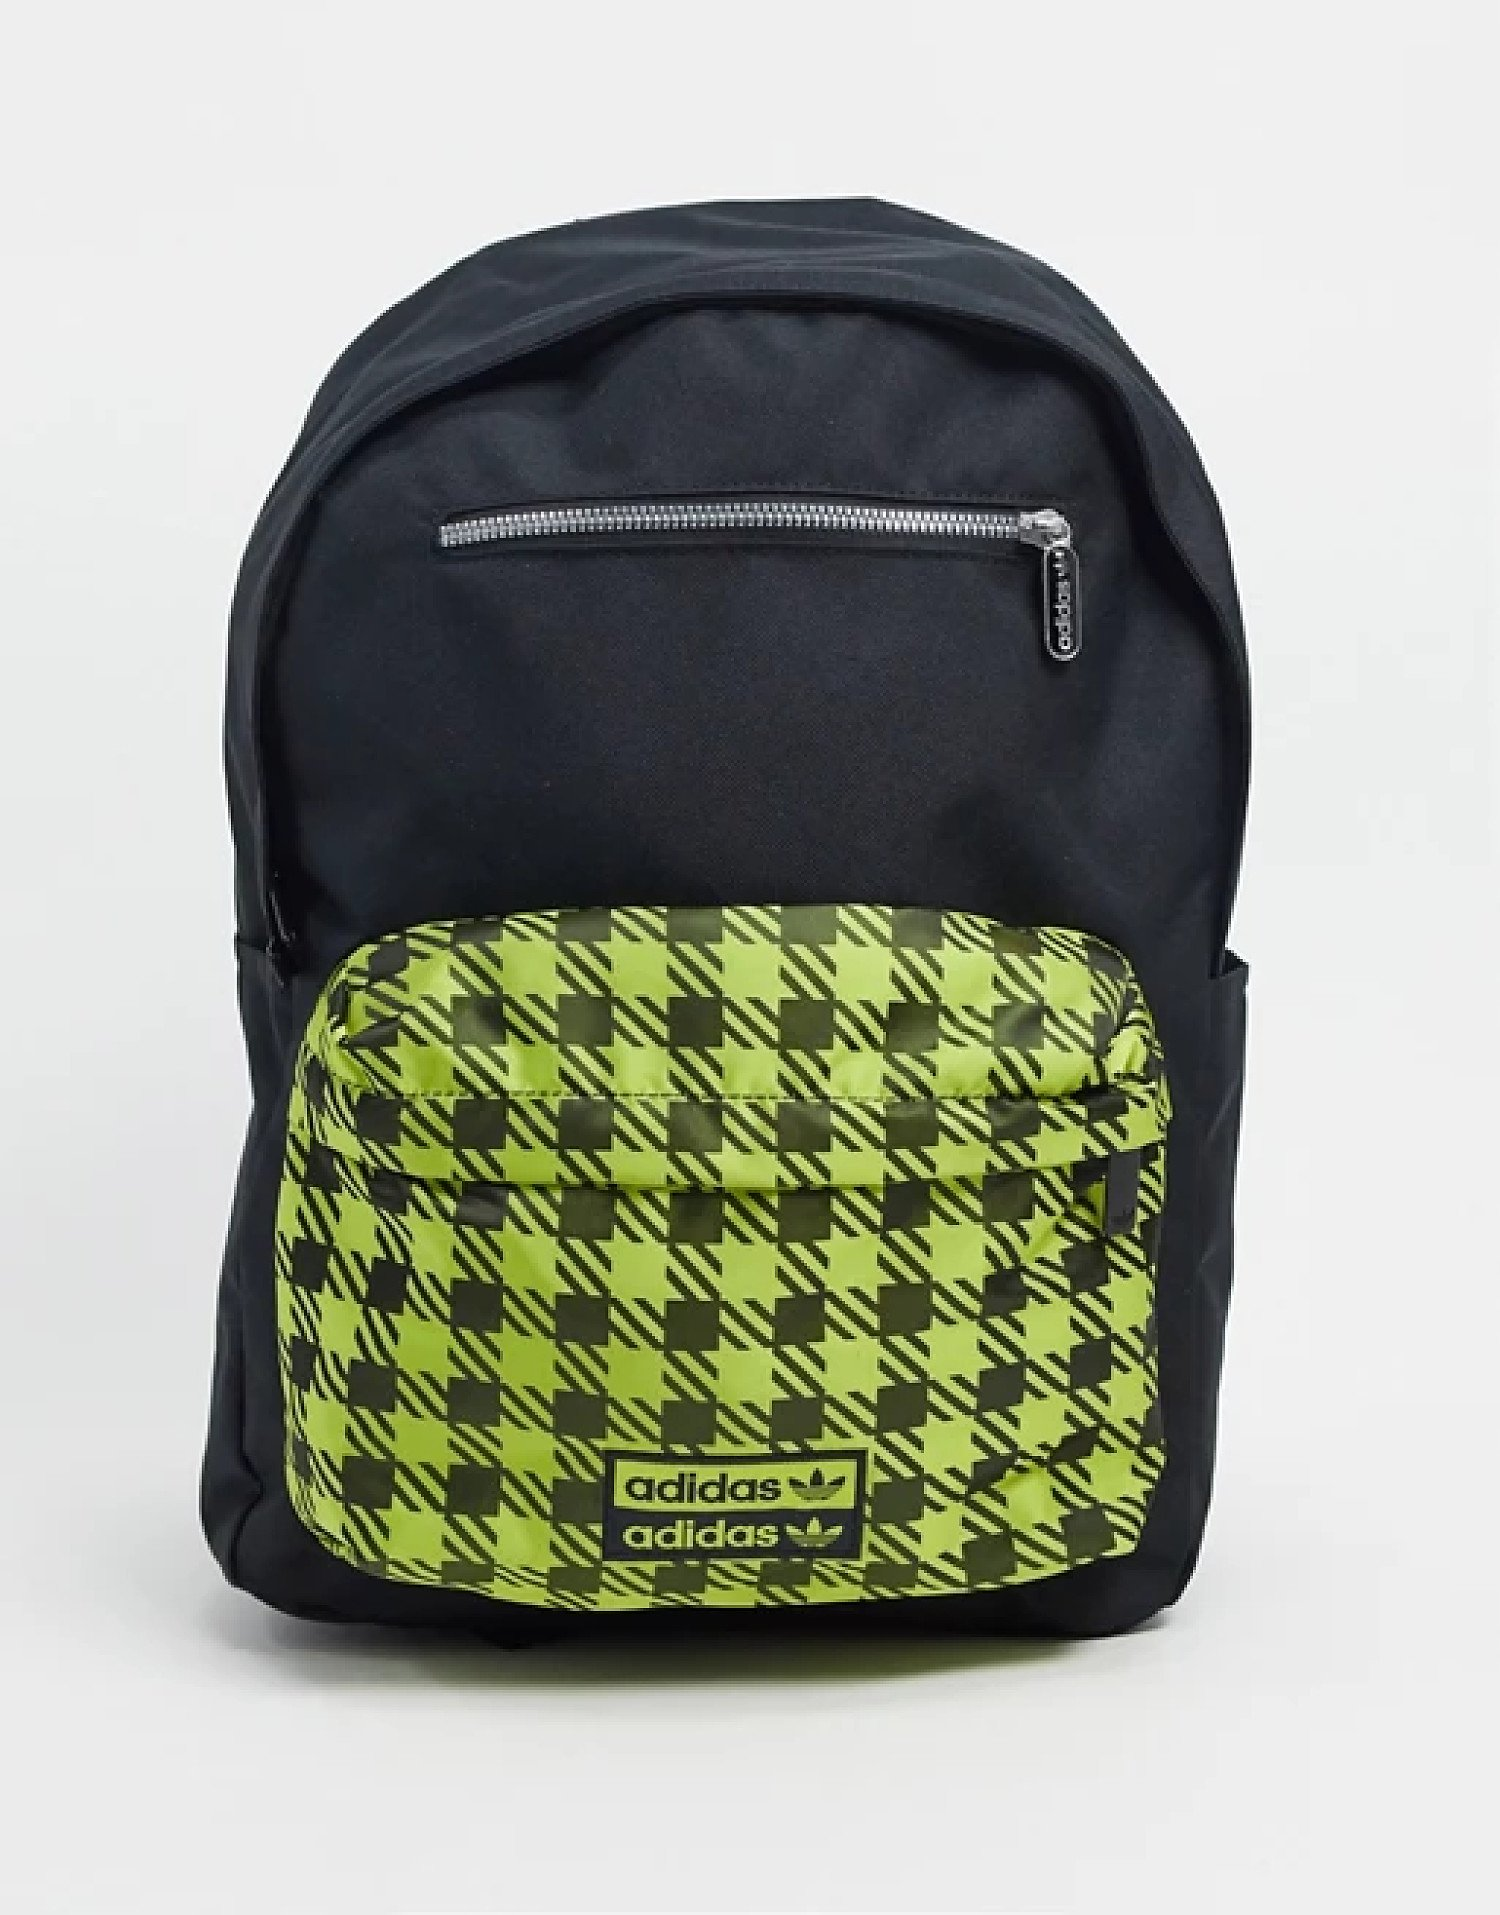 SALE - adidas Originals RYV checked backpack in black and yellow!